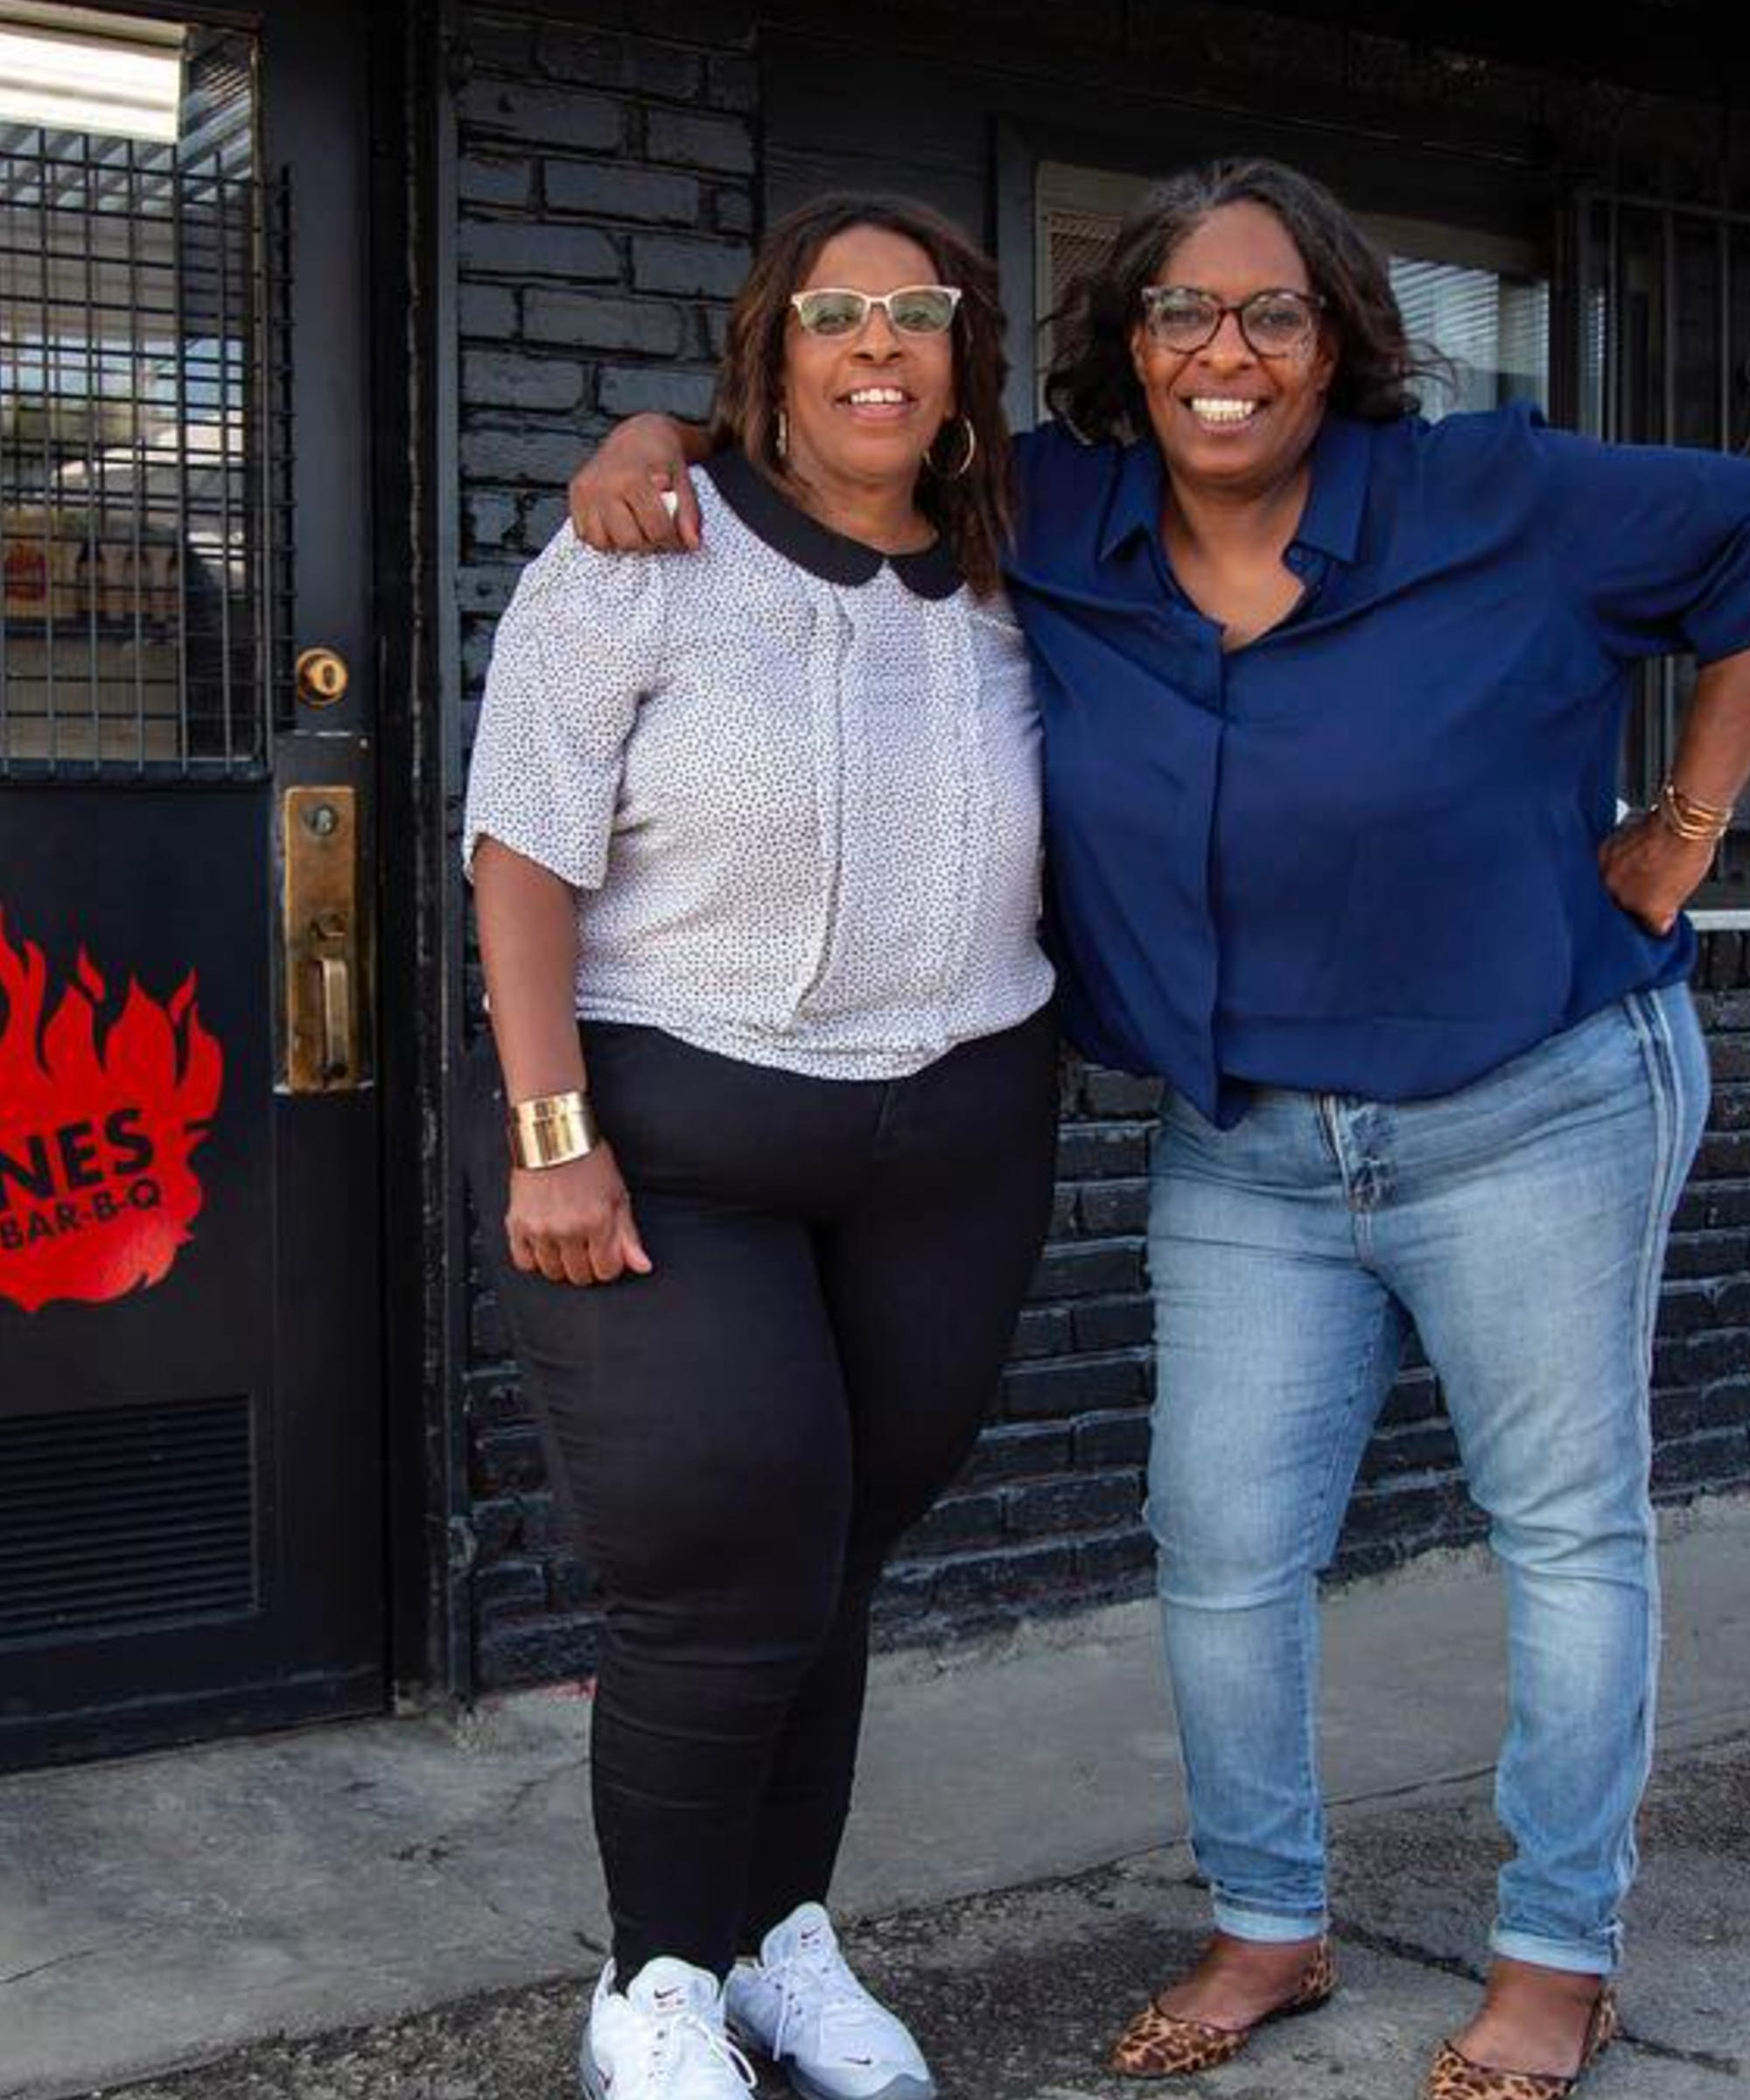 The Jones Sisters Got The Queer Eye Glow Up This Weekend & Sold Out Of Their Famous BBQ Sauce